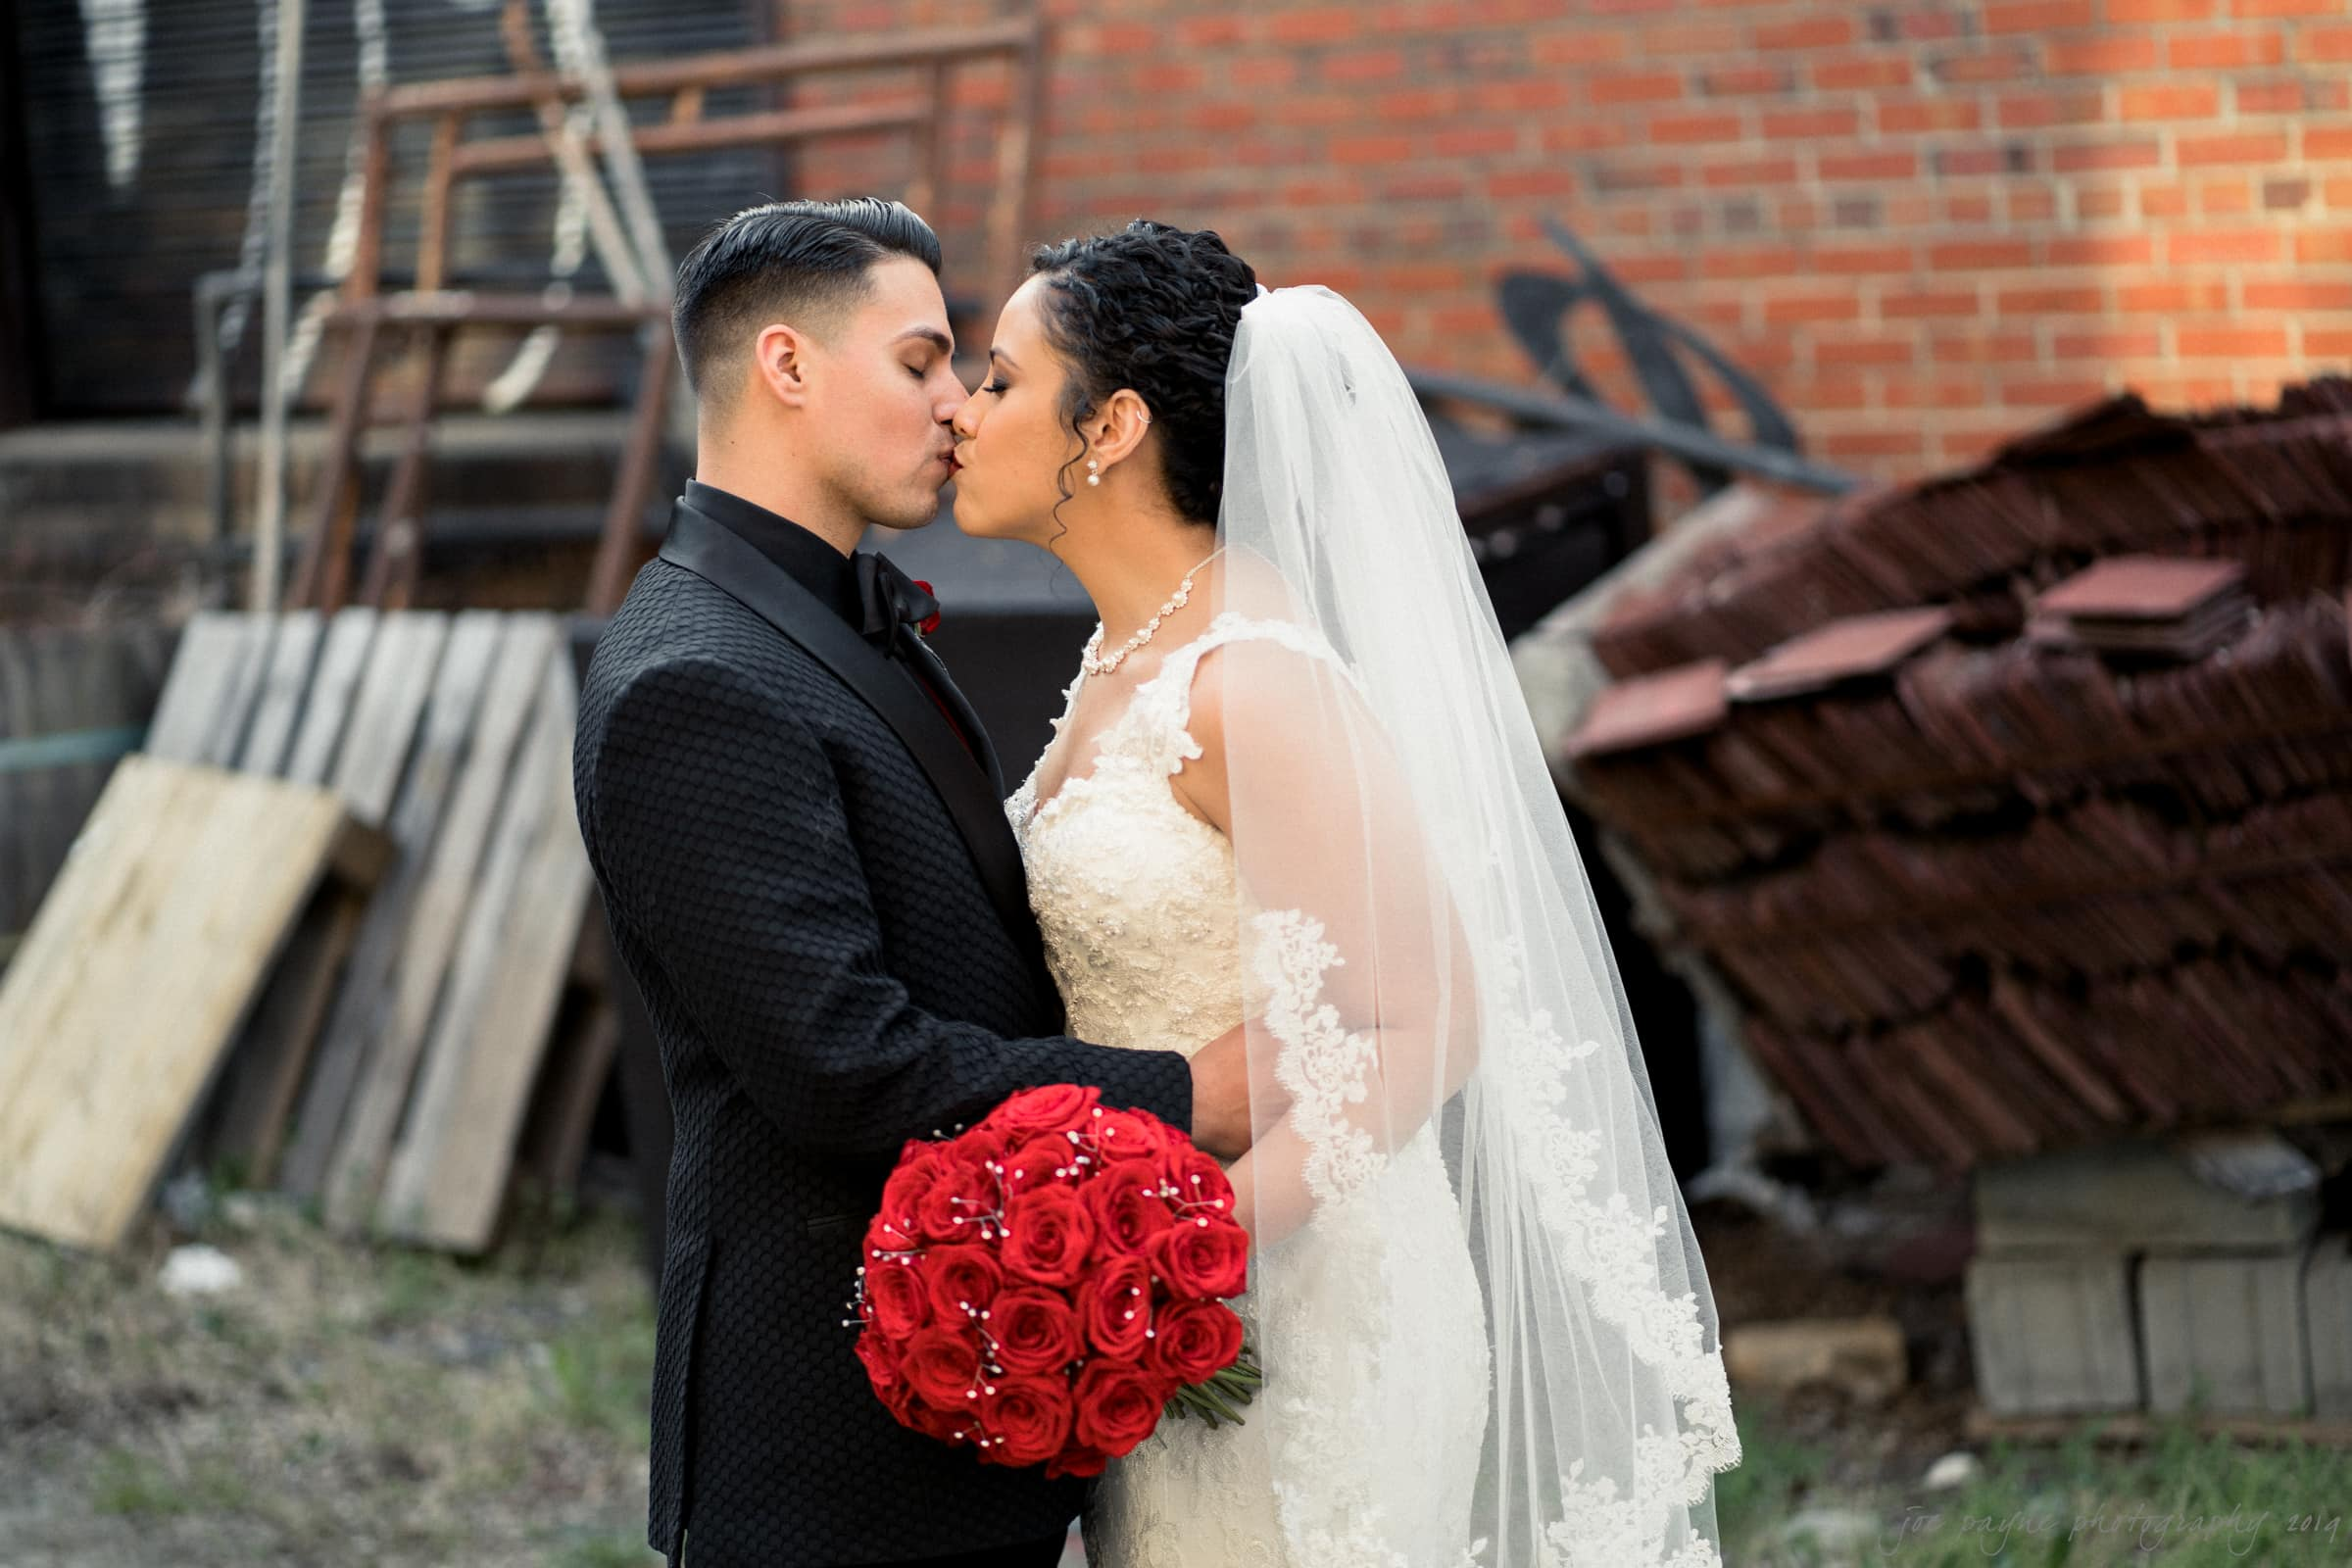 melrose knitting mill raleigh wedding photographer melanie anthony 35